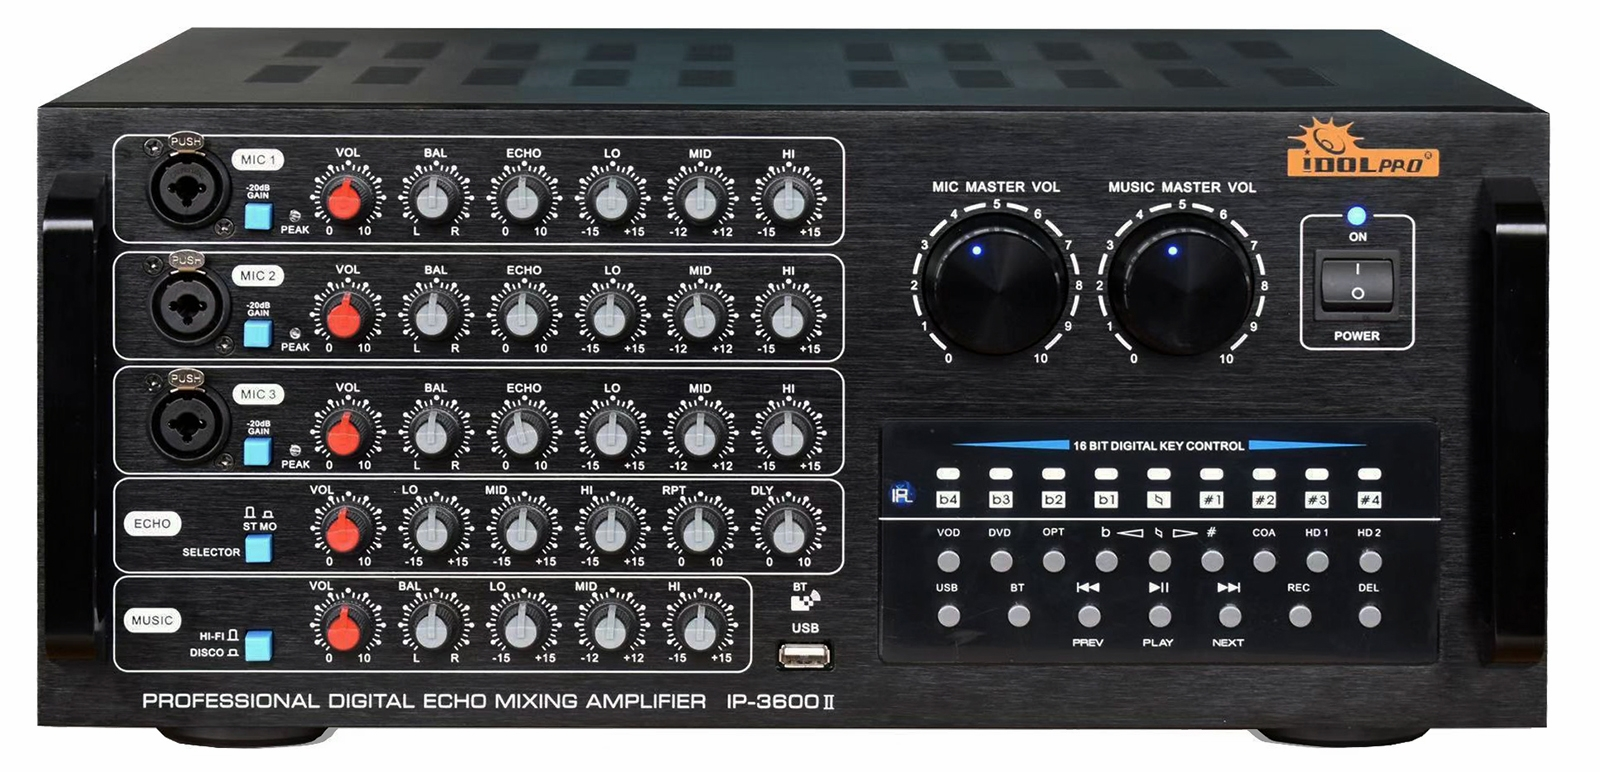 MIXING AMPLIFIER